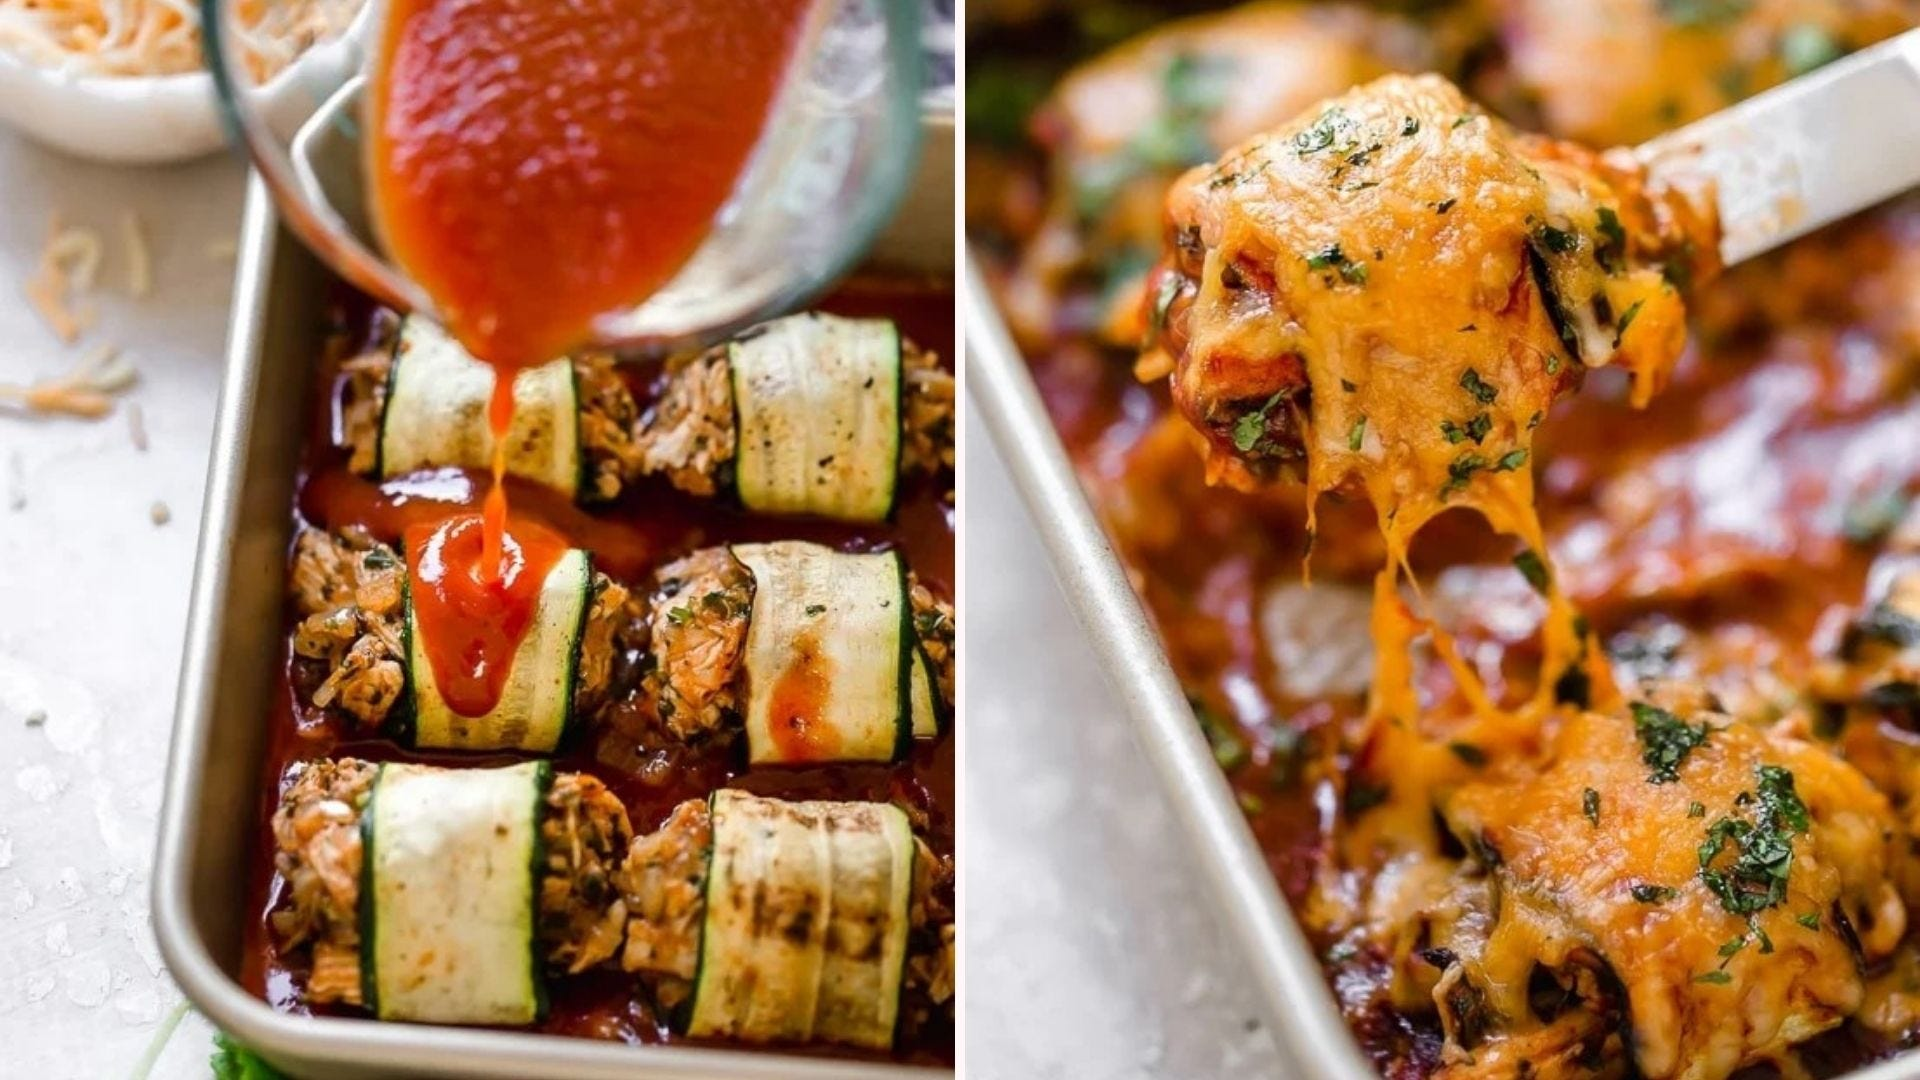 Two images: The left image is of marinara sauce being drizzled over zucchini chicken enchilada roll-ups and the right image is of hot baked enchilada rollups topped with loads of melty cheese.